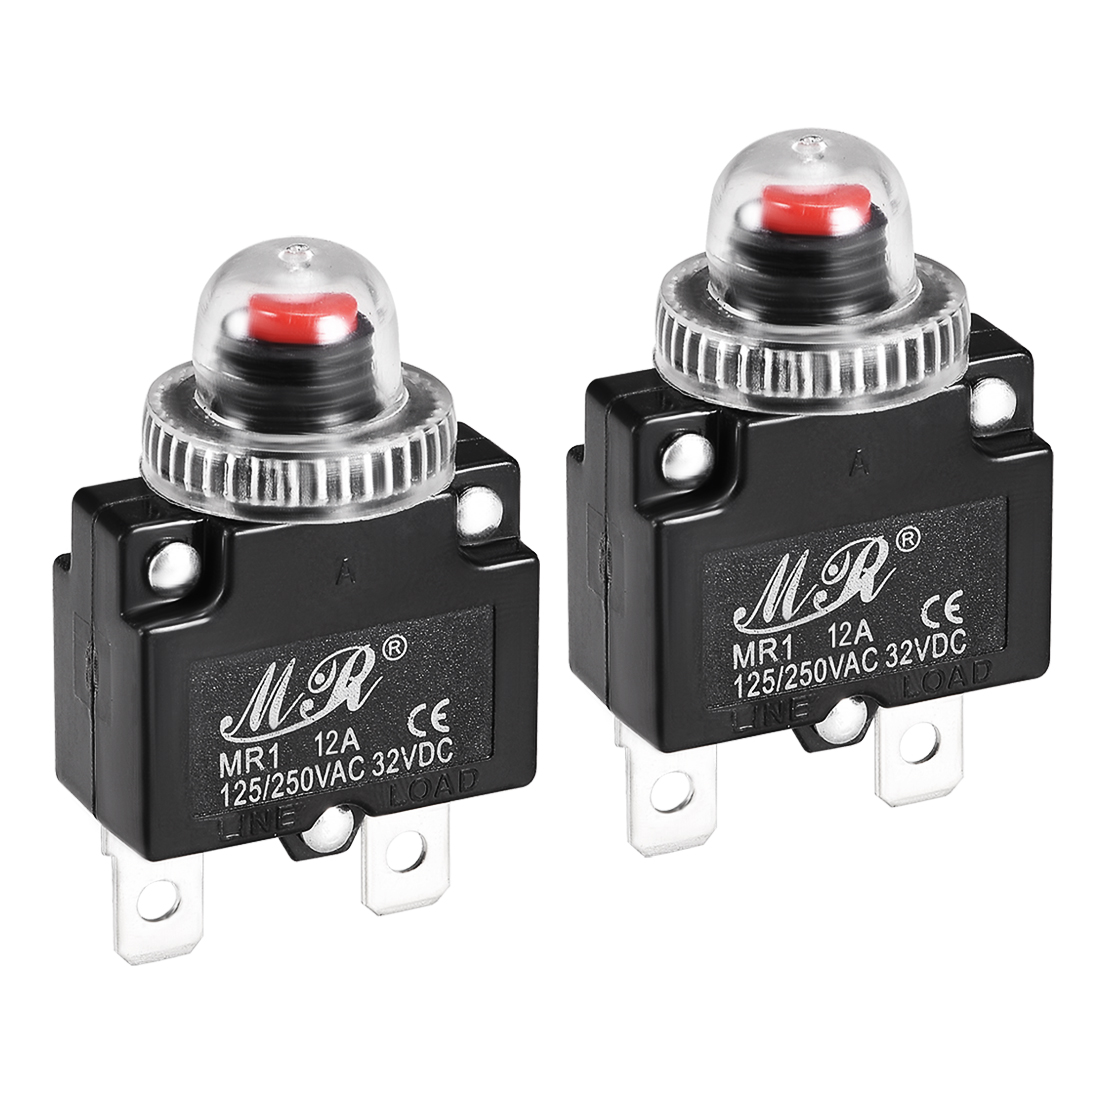 2 Pcs 12A 125/250V Push Button Reset Overload Protector Thermal Circuit Breaker